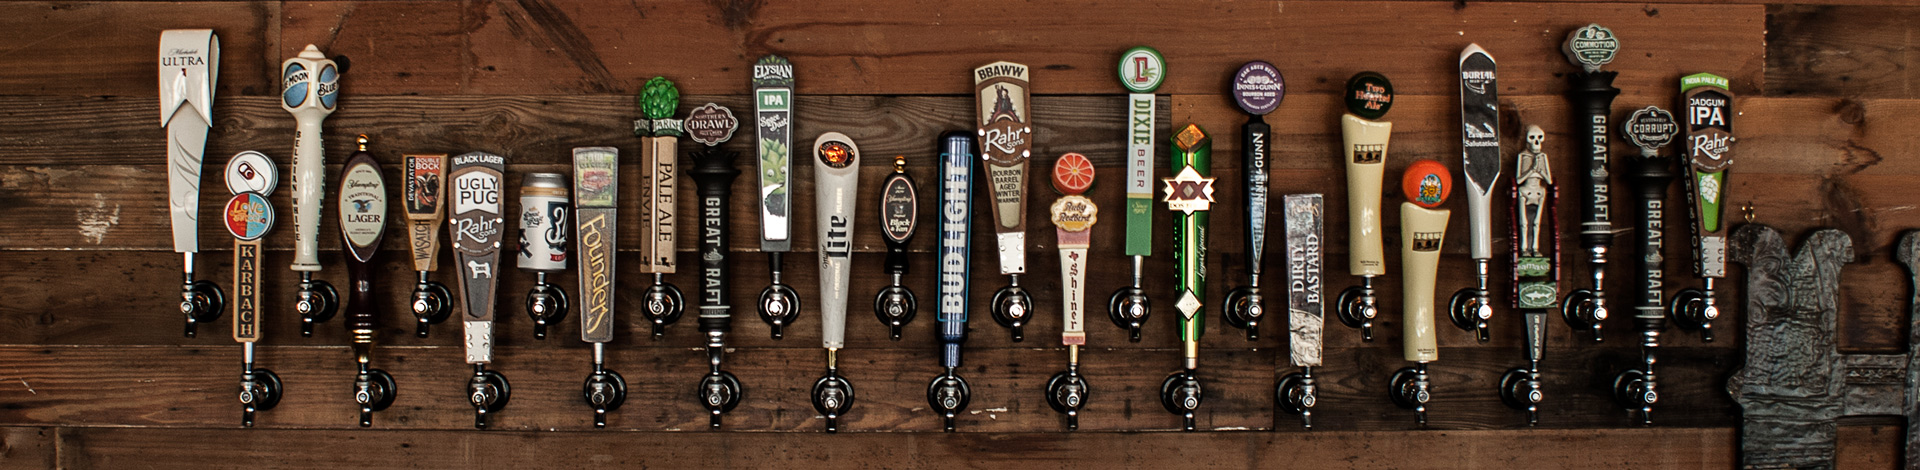 We have 27 different types of beer on tap.